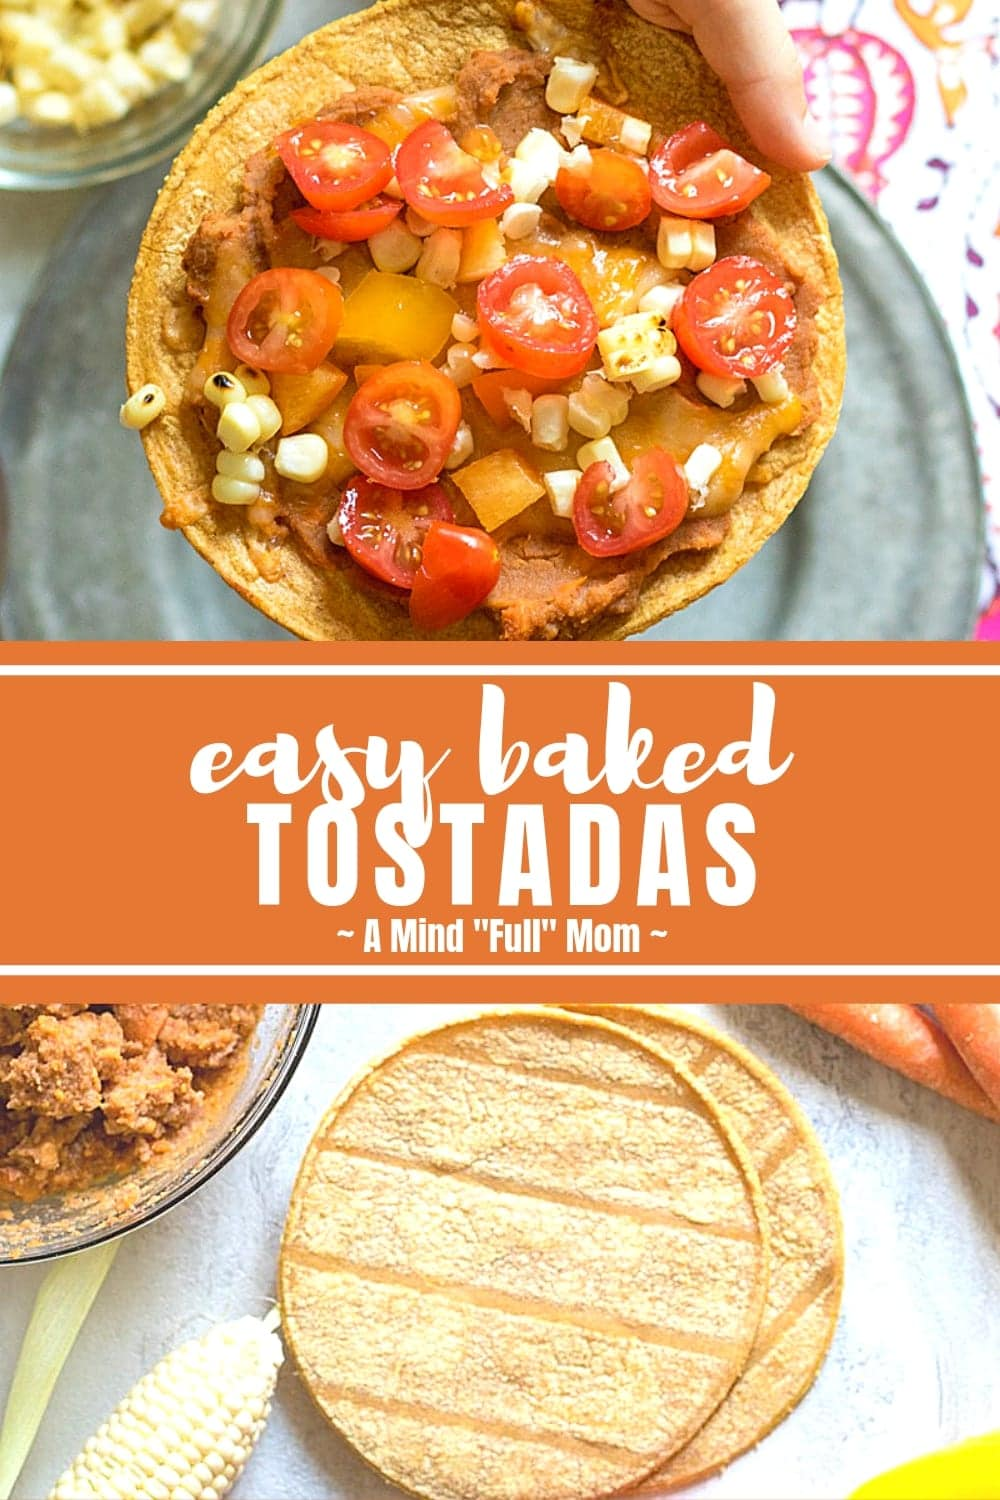 Homemade Tostadas are loaded with veggies and Mexican flavors for an irresistible healthy recipe. These Baked Tostadas are made with crisp corn tortillas, refried beans, cheese, and fresh vegetables. This kid-friendly meal packs a huge dose of vegetables in each serving.